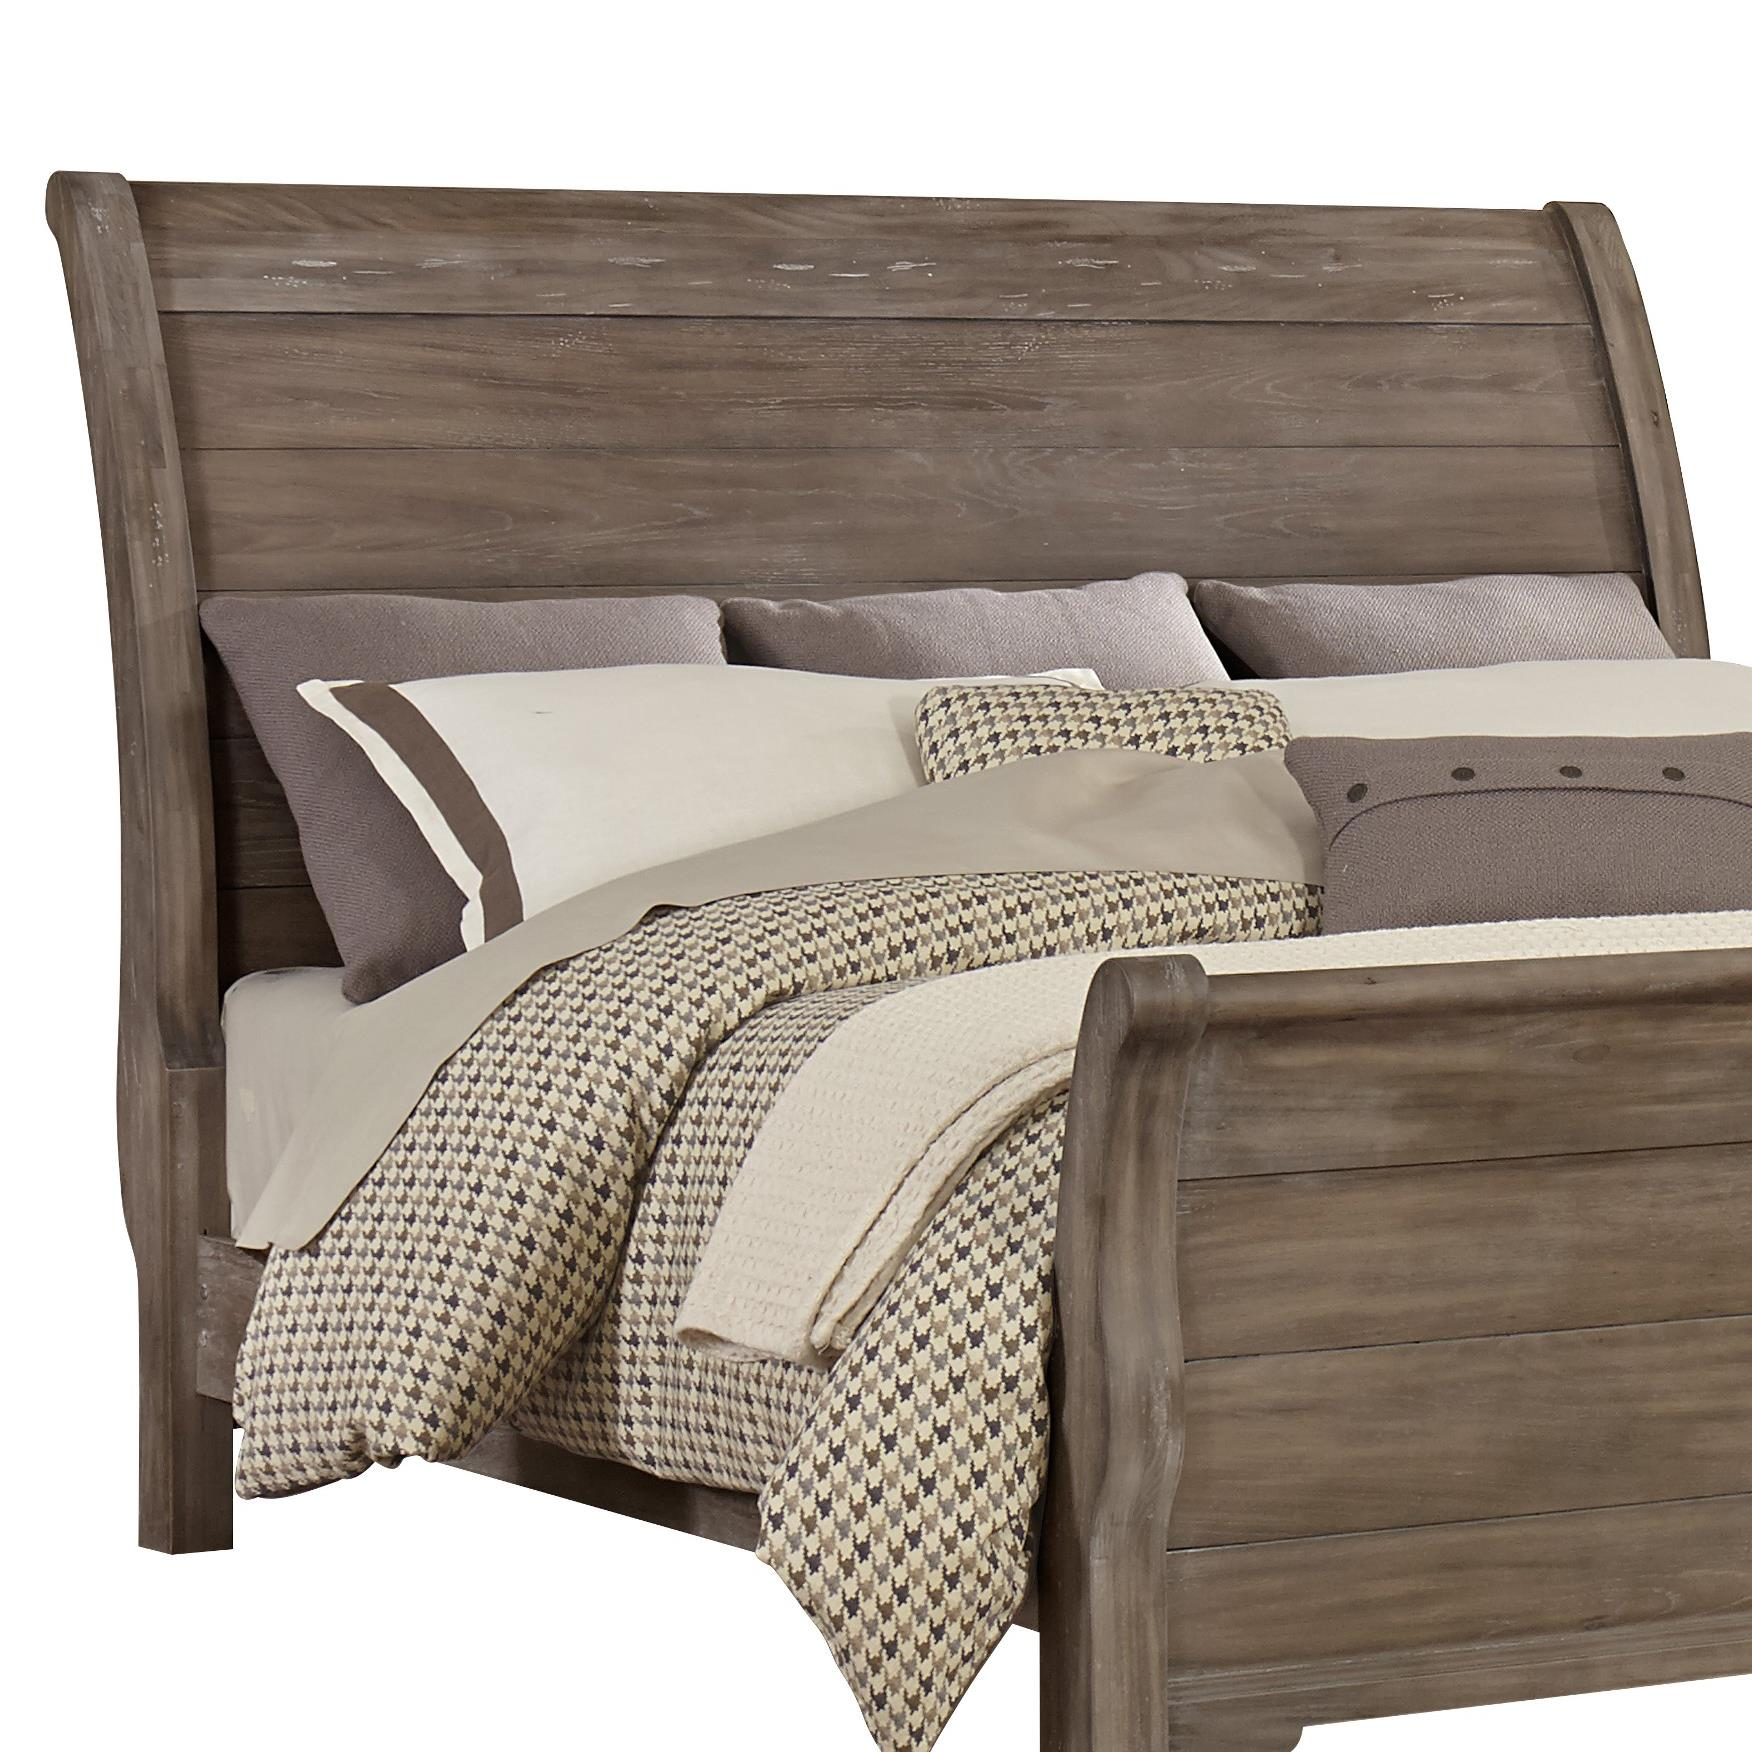 vaughan bassett whiskey barrel distressed queen sleigh. Black Bedroom Furniture Sets. Home Design Ideas